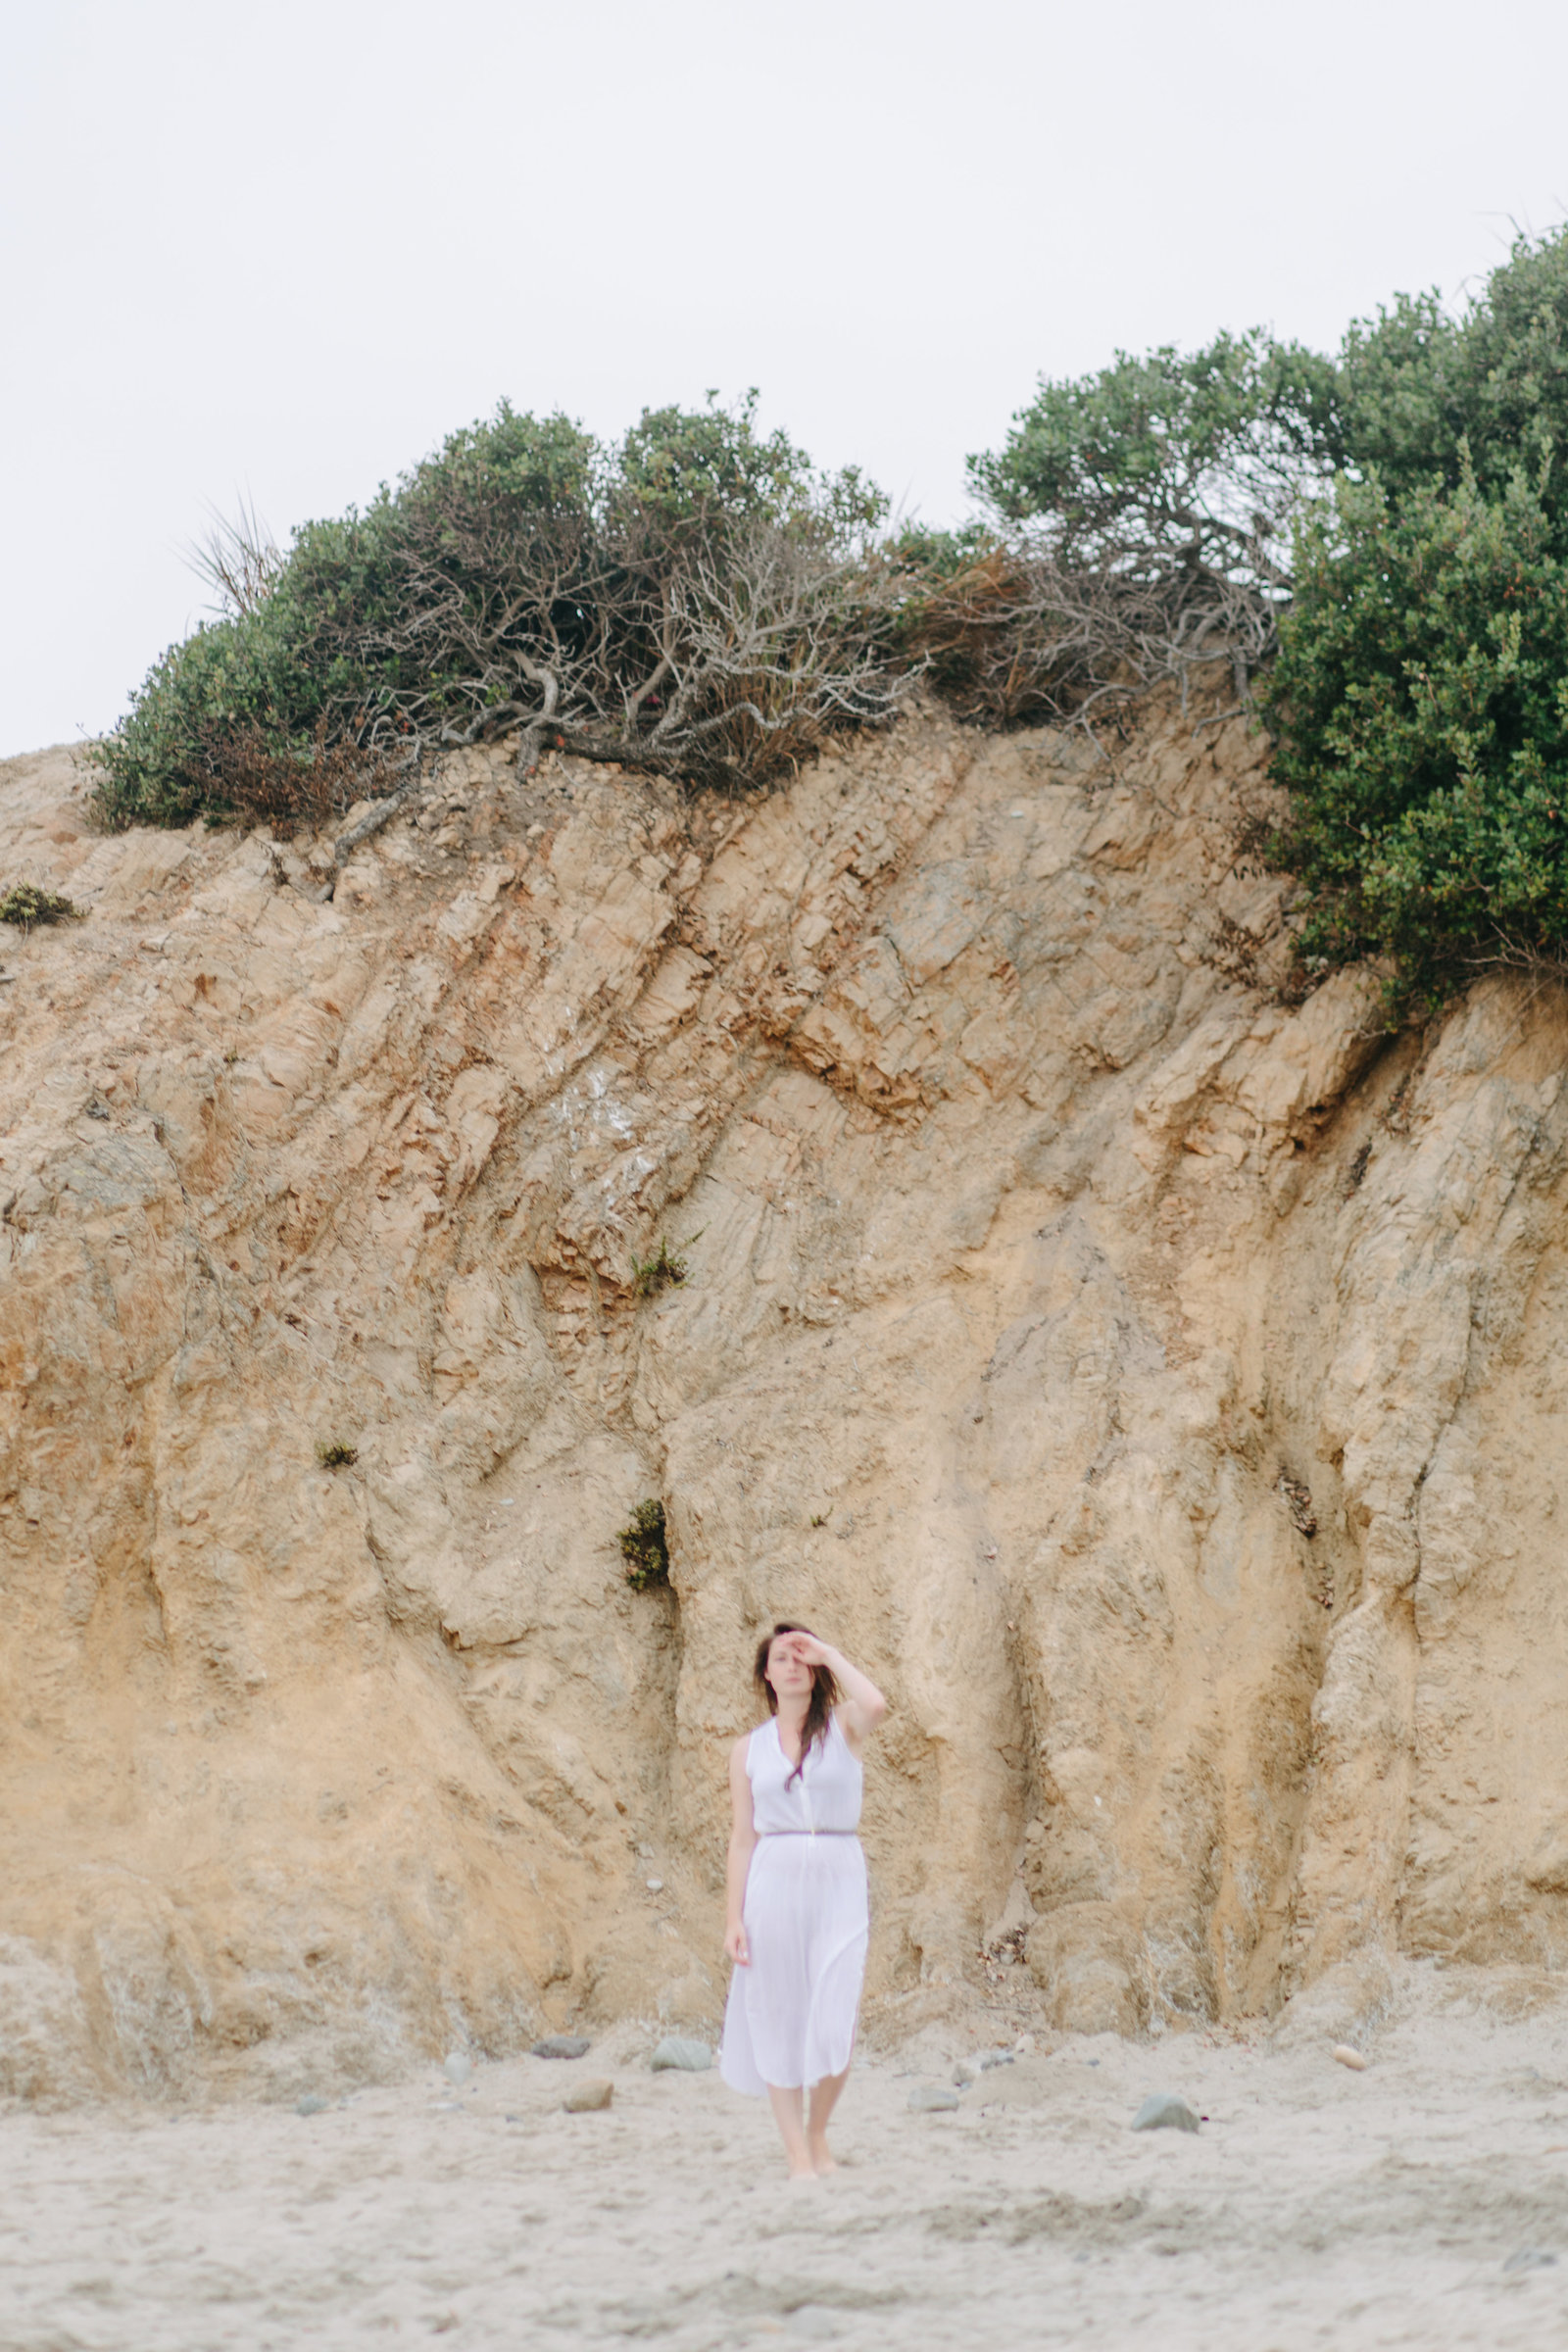 El Leo Carrillo Beach Malibu Angelika Johns Photography-3151